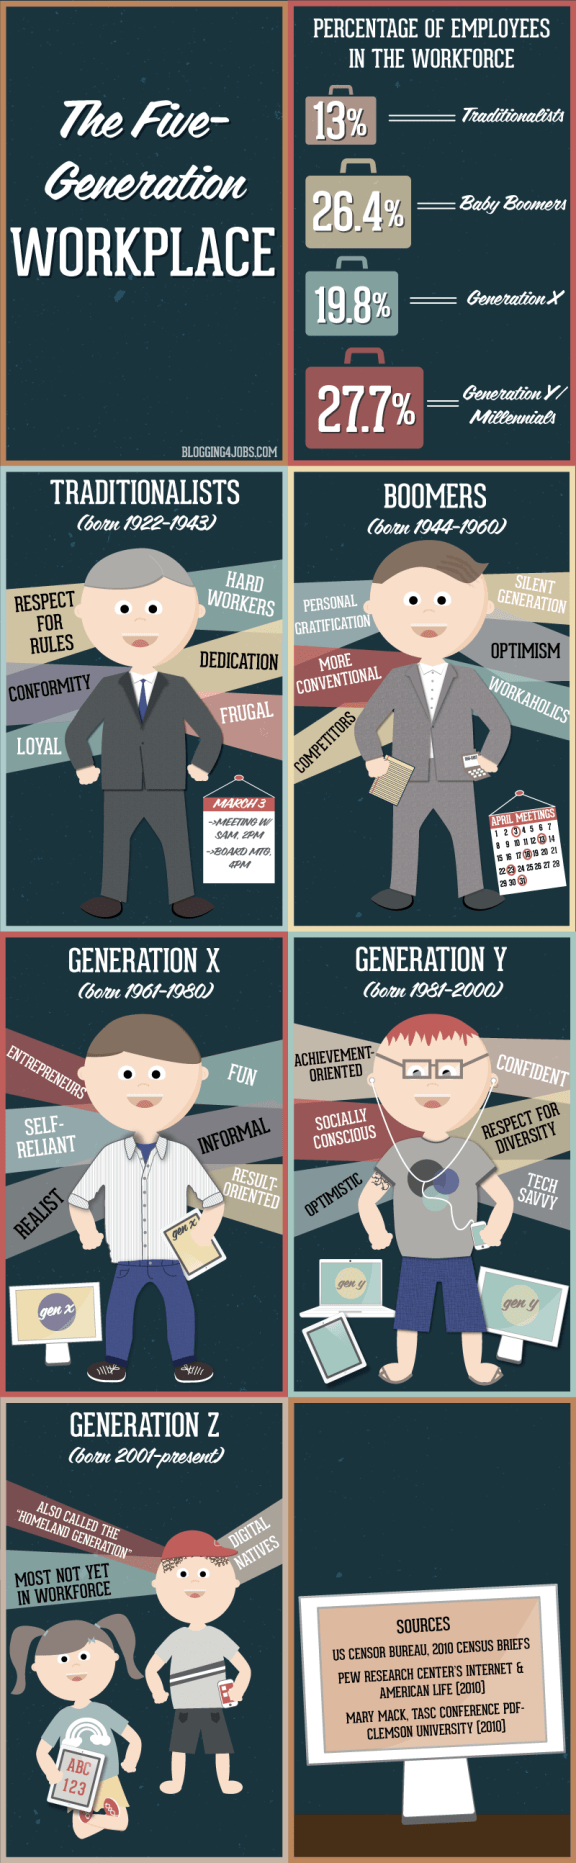 generations-workplace